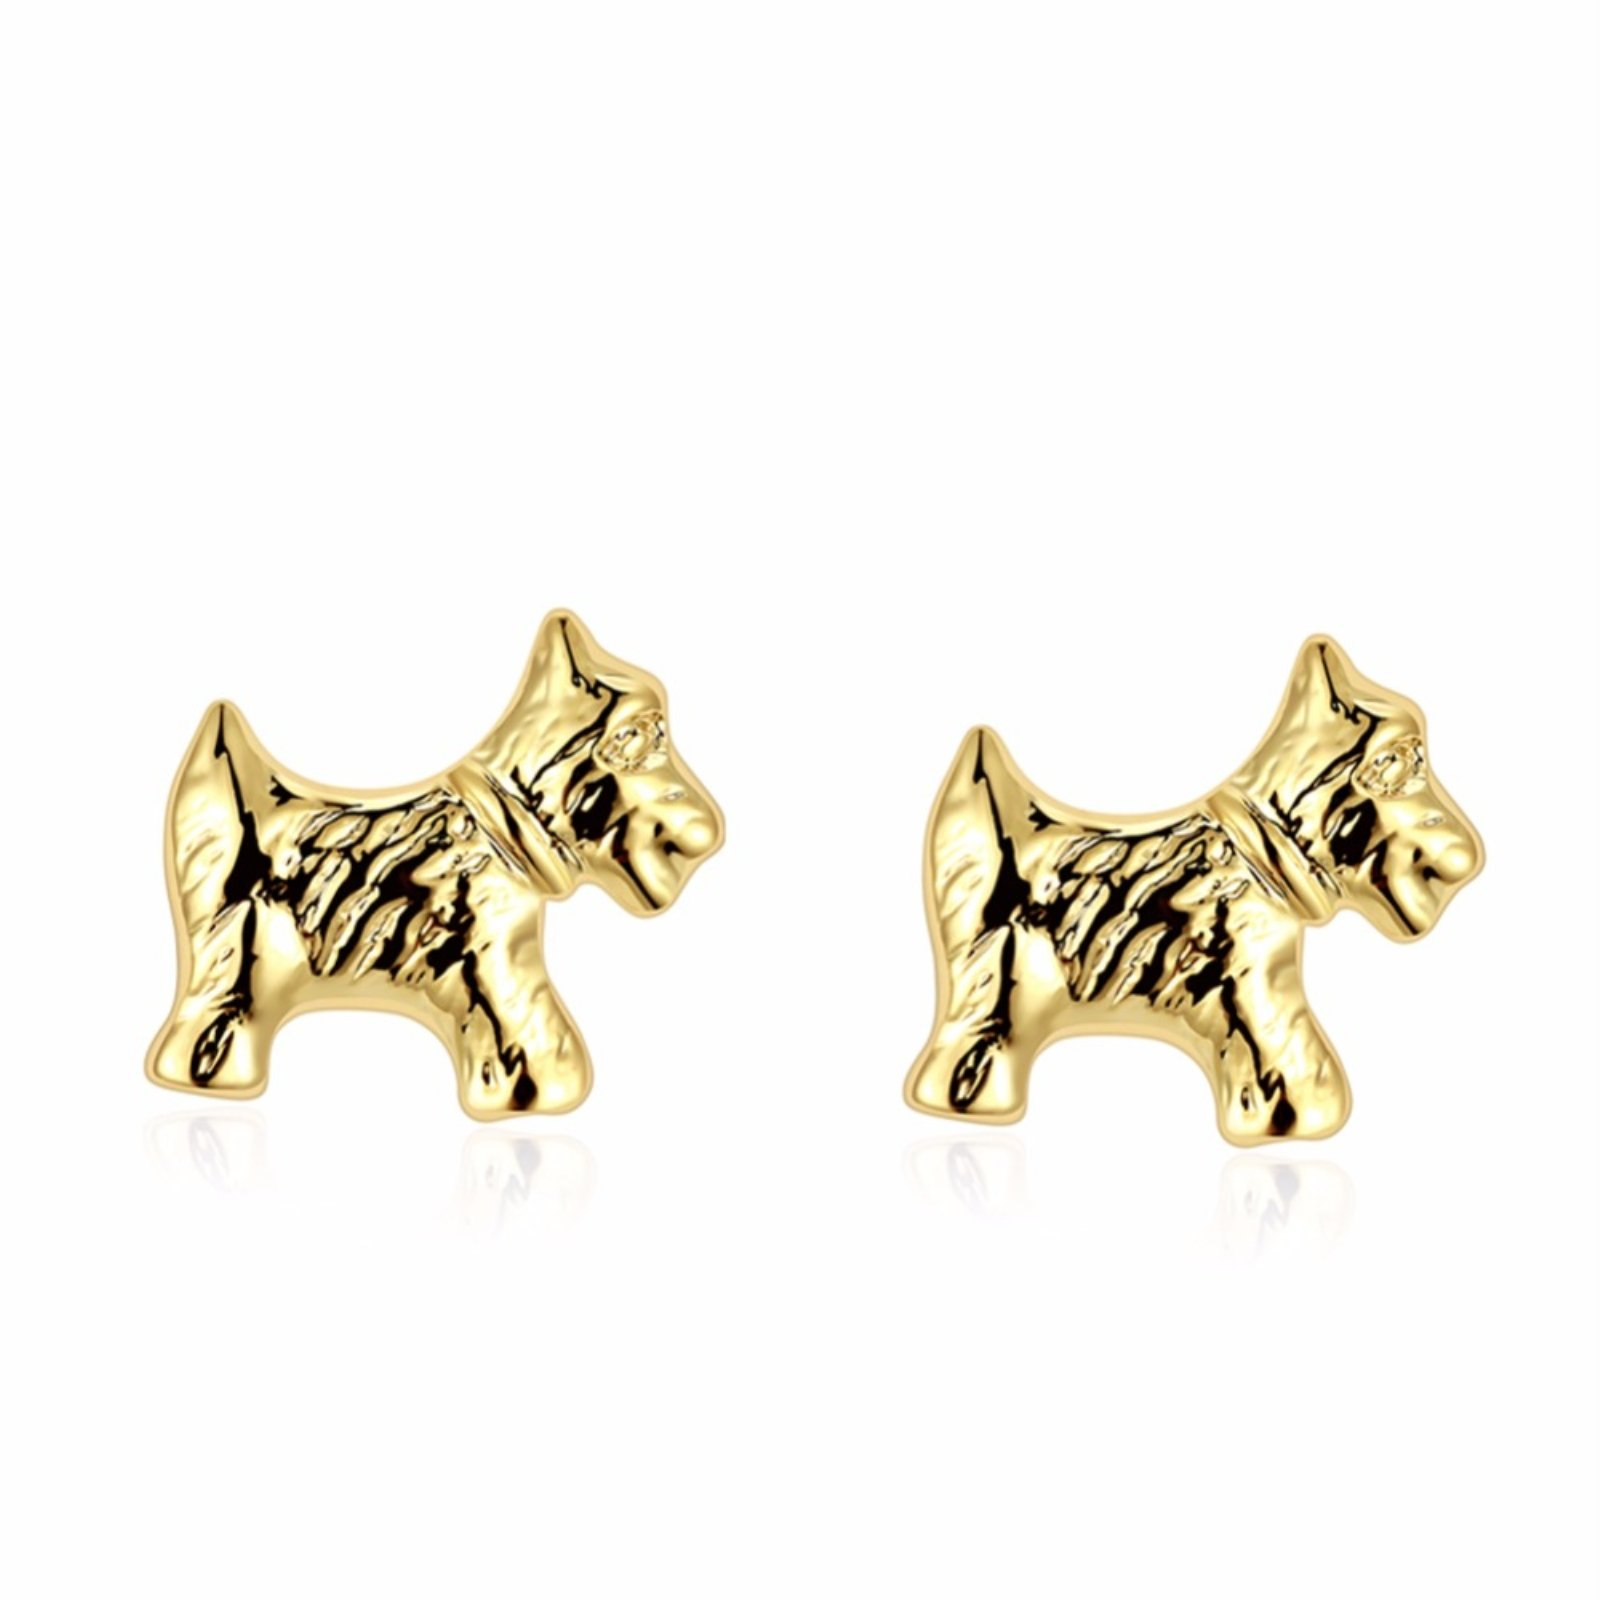 ptk12 Women's Jewelry Fashion Cute Tiny Puppy Dog Stud Earrings Gift For School Girls Kids Lady